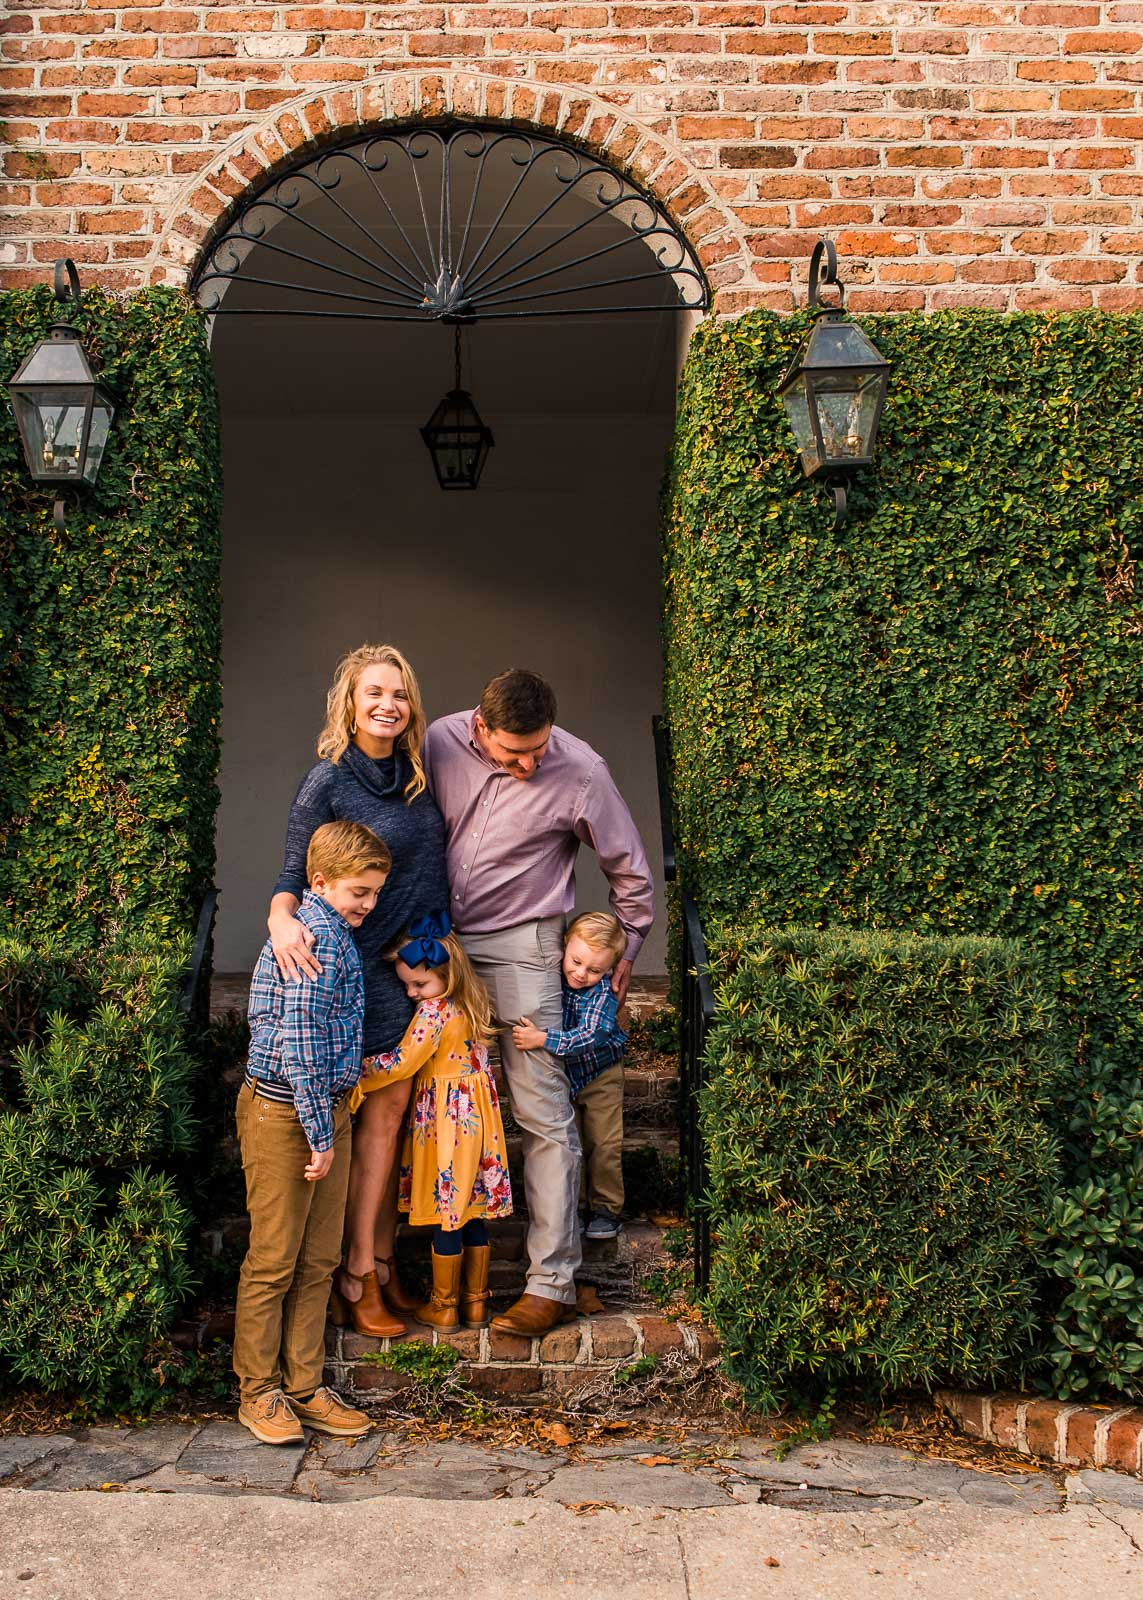 family-poses_family-hugging-in-brick-doorway-larissa-lord-photography-1-2